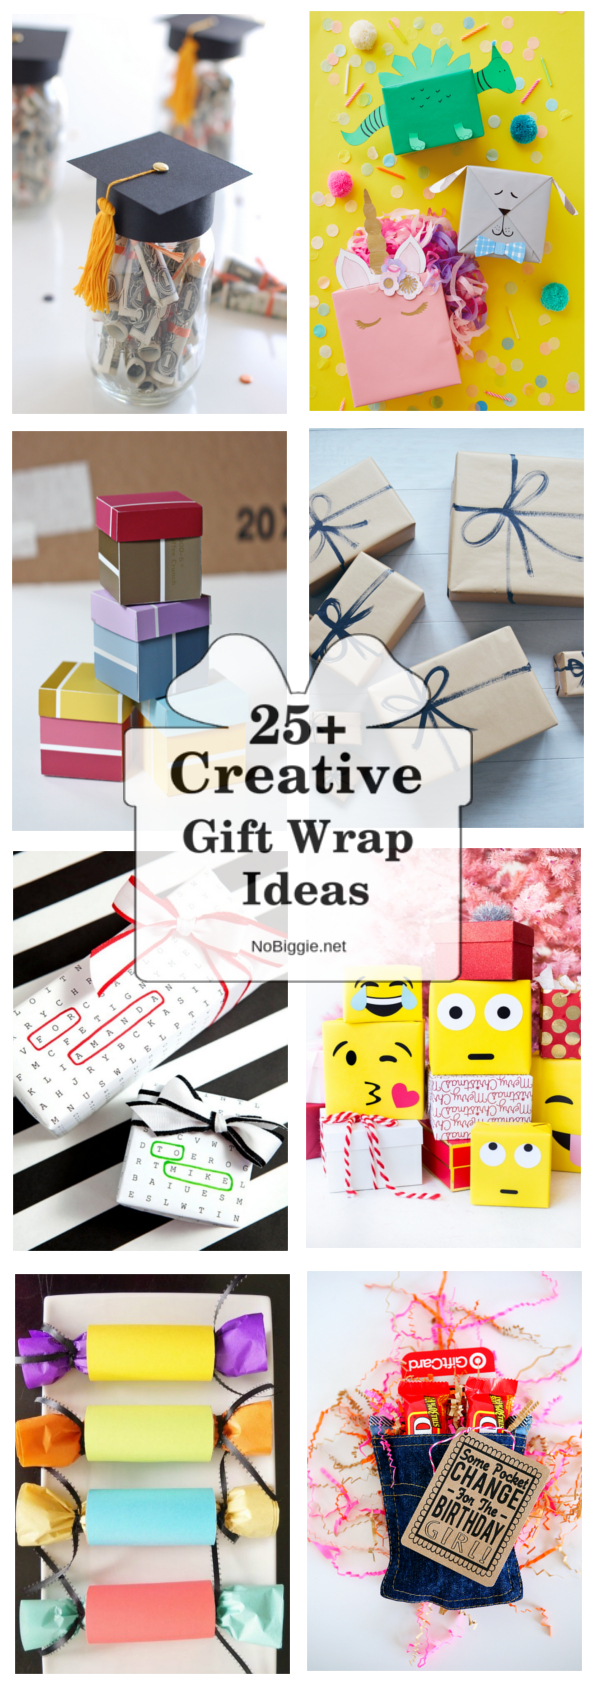 Creative Gift Wrap Ideas for all your gift wrap needs! # Creativegiftwrap #giftwrap #giftwrapideas #creativewrappingideas